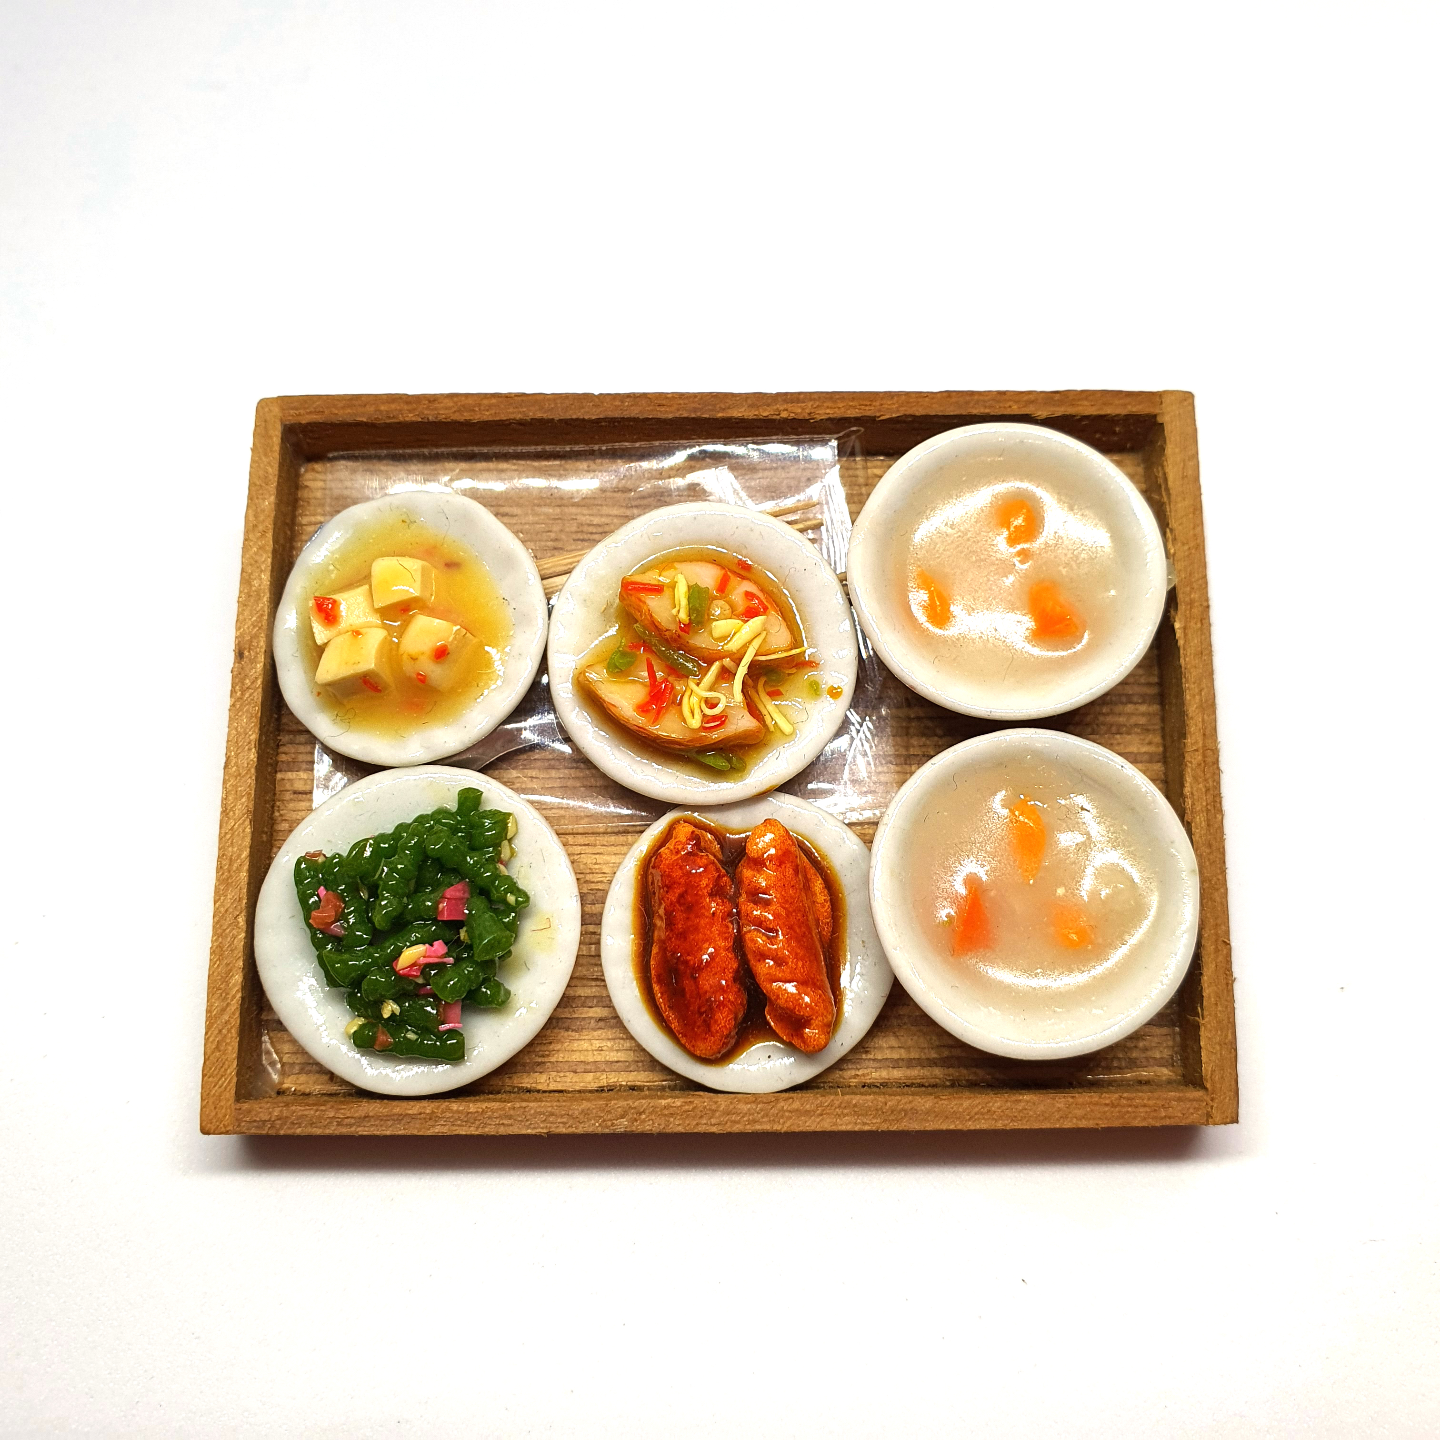 Handmade Miniature: Teochew Porridge by Madam Ang Miniature World